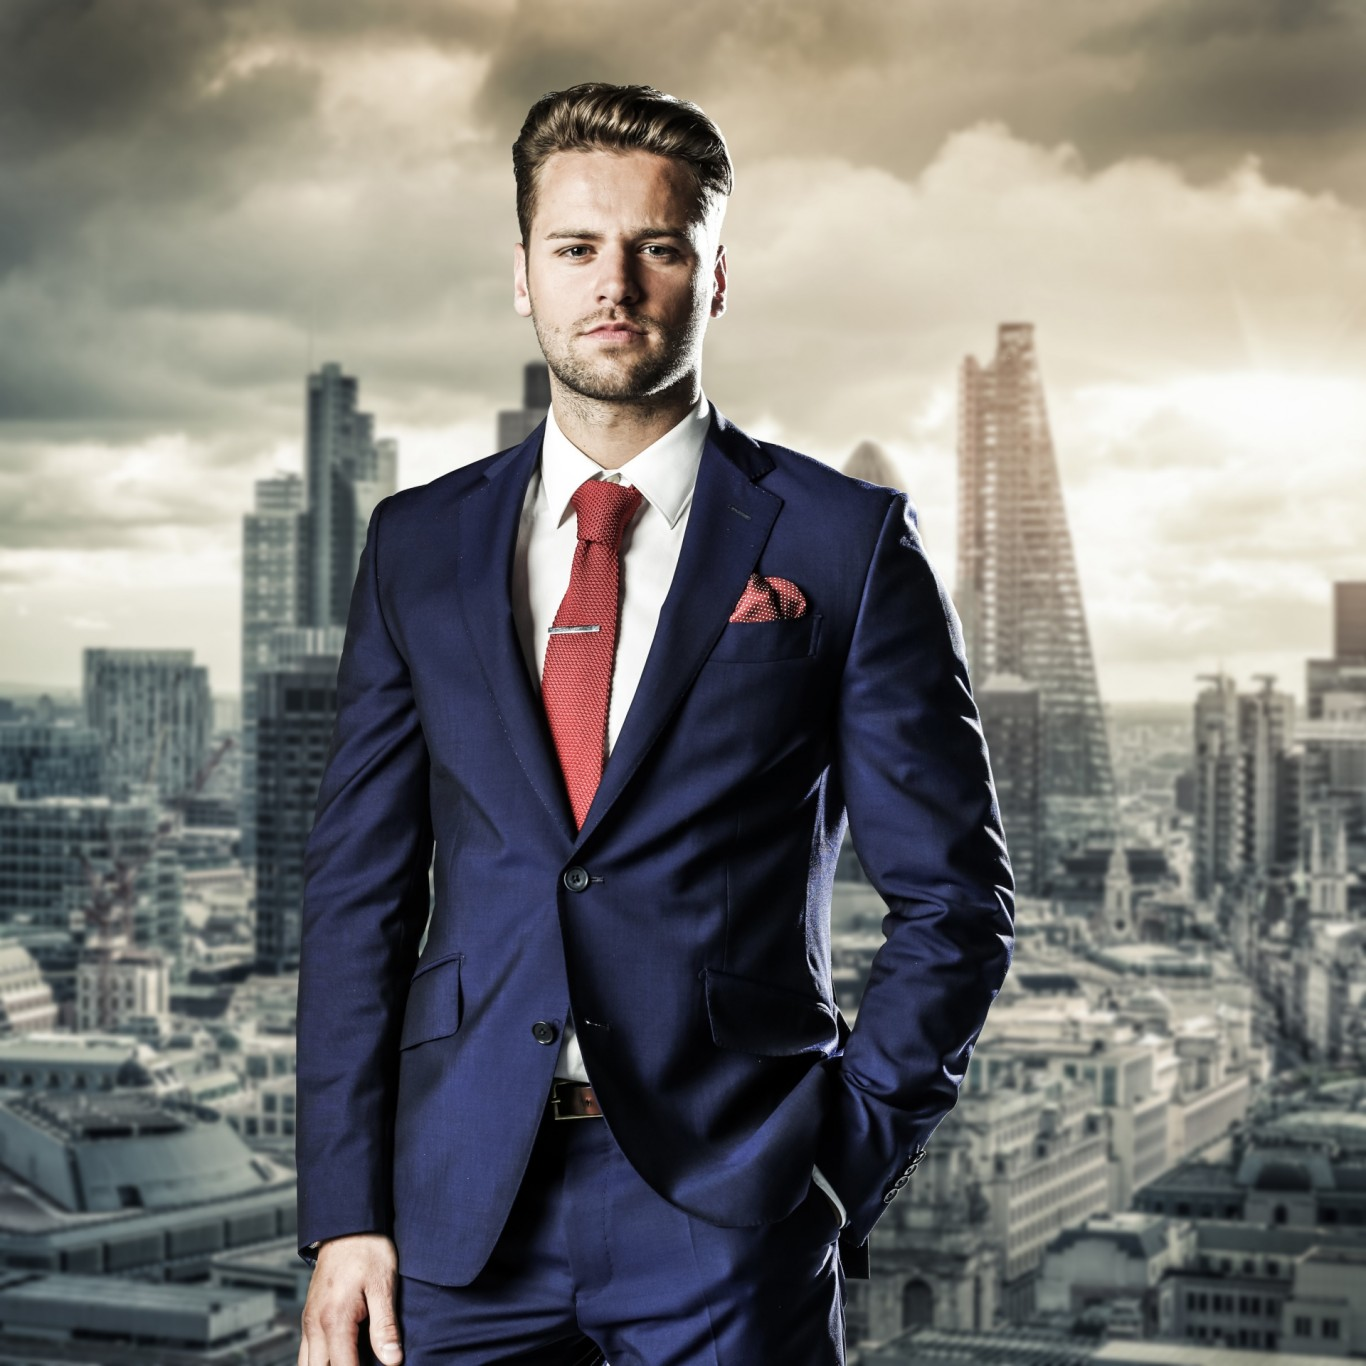 James Hill, Apprentice contestant